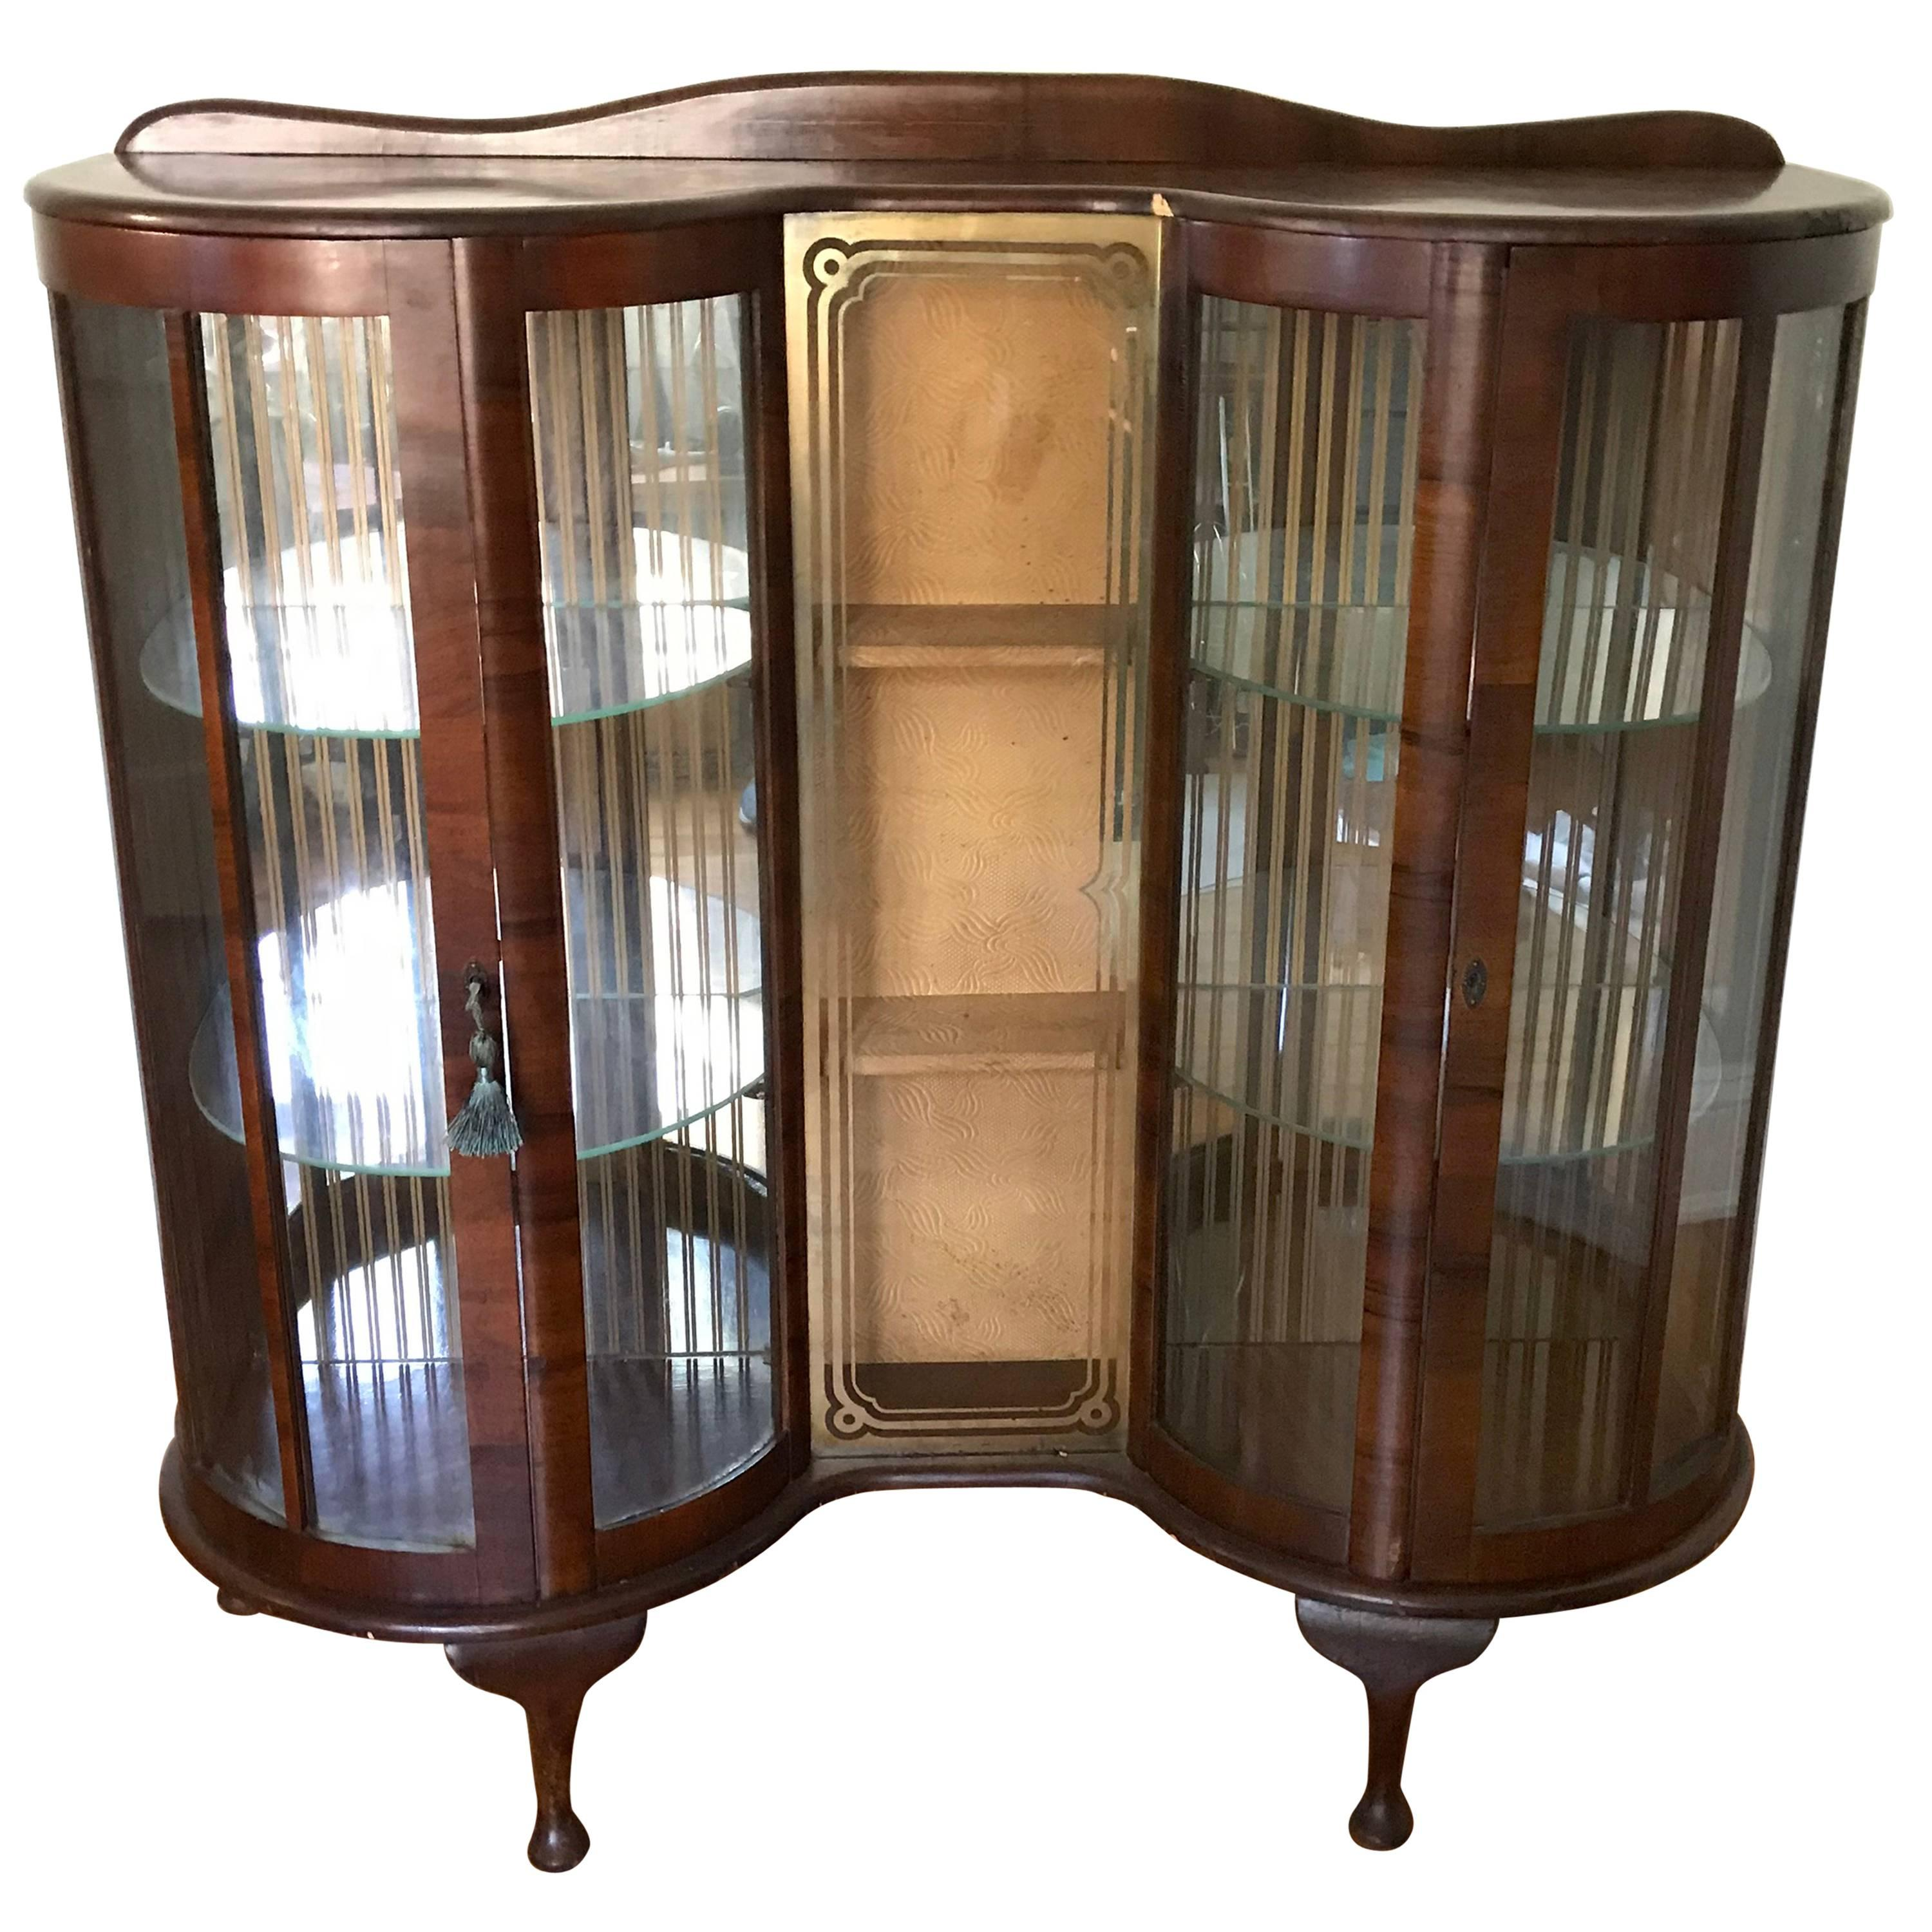 1950s English Walnut And Glass Curio Display Cabinet For Sale